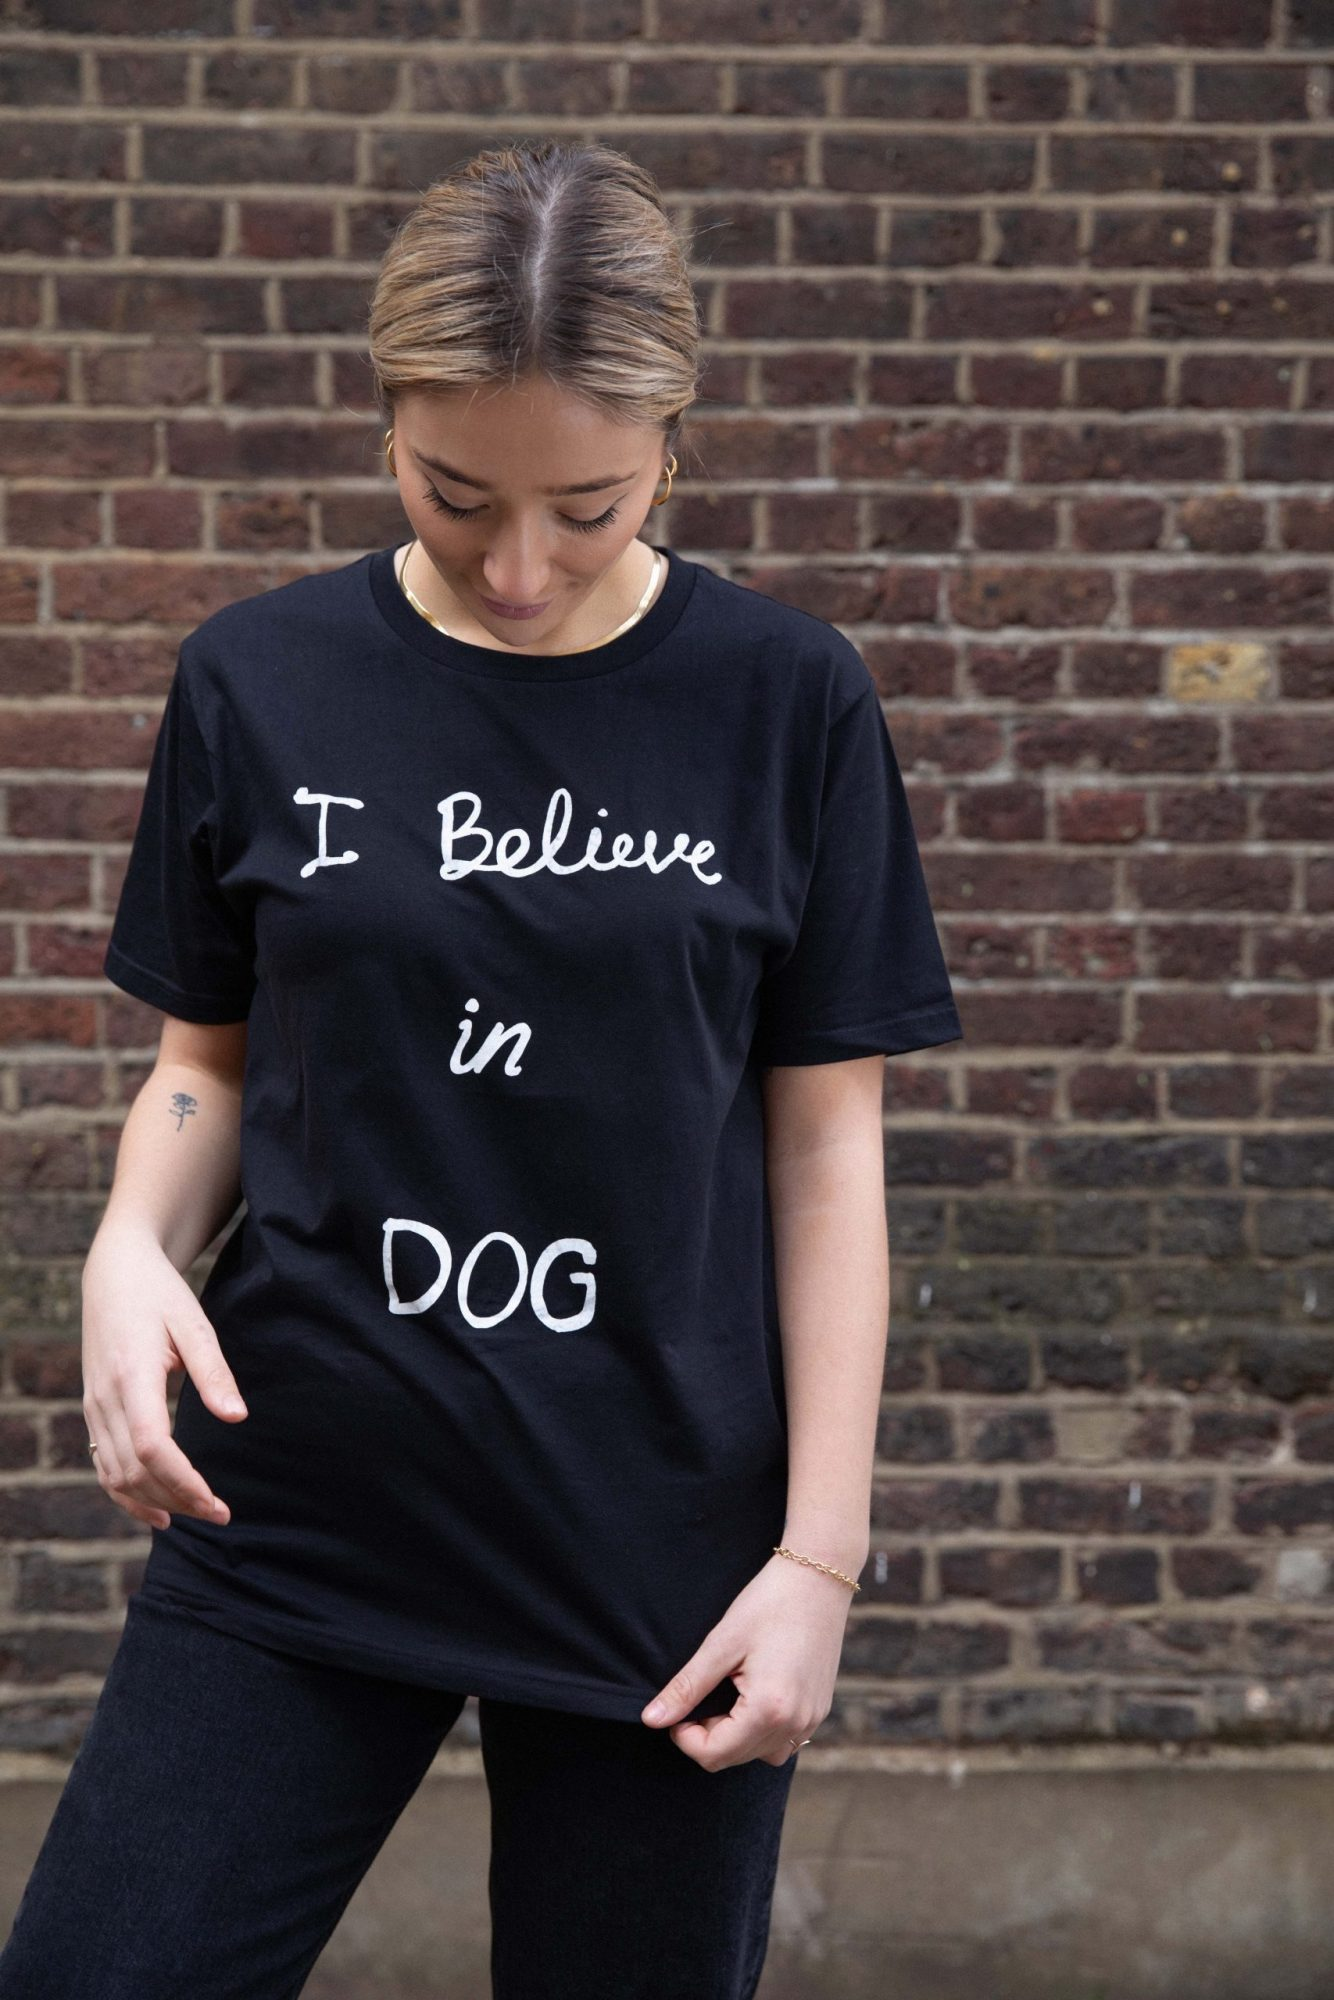 Supporting international dog rescue